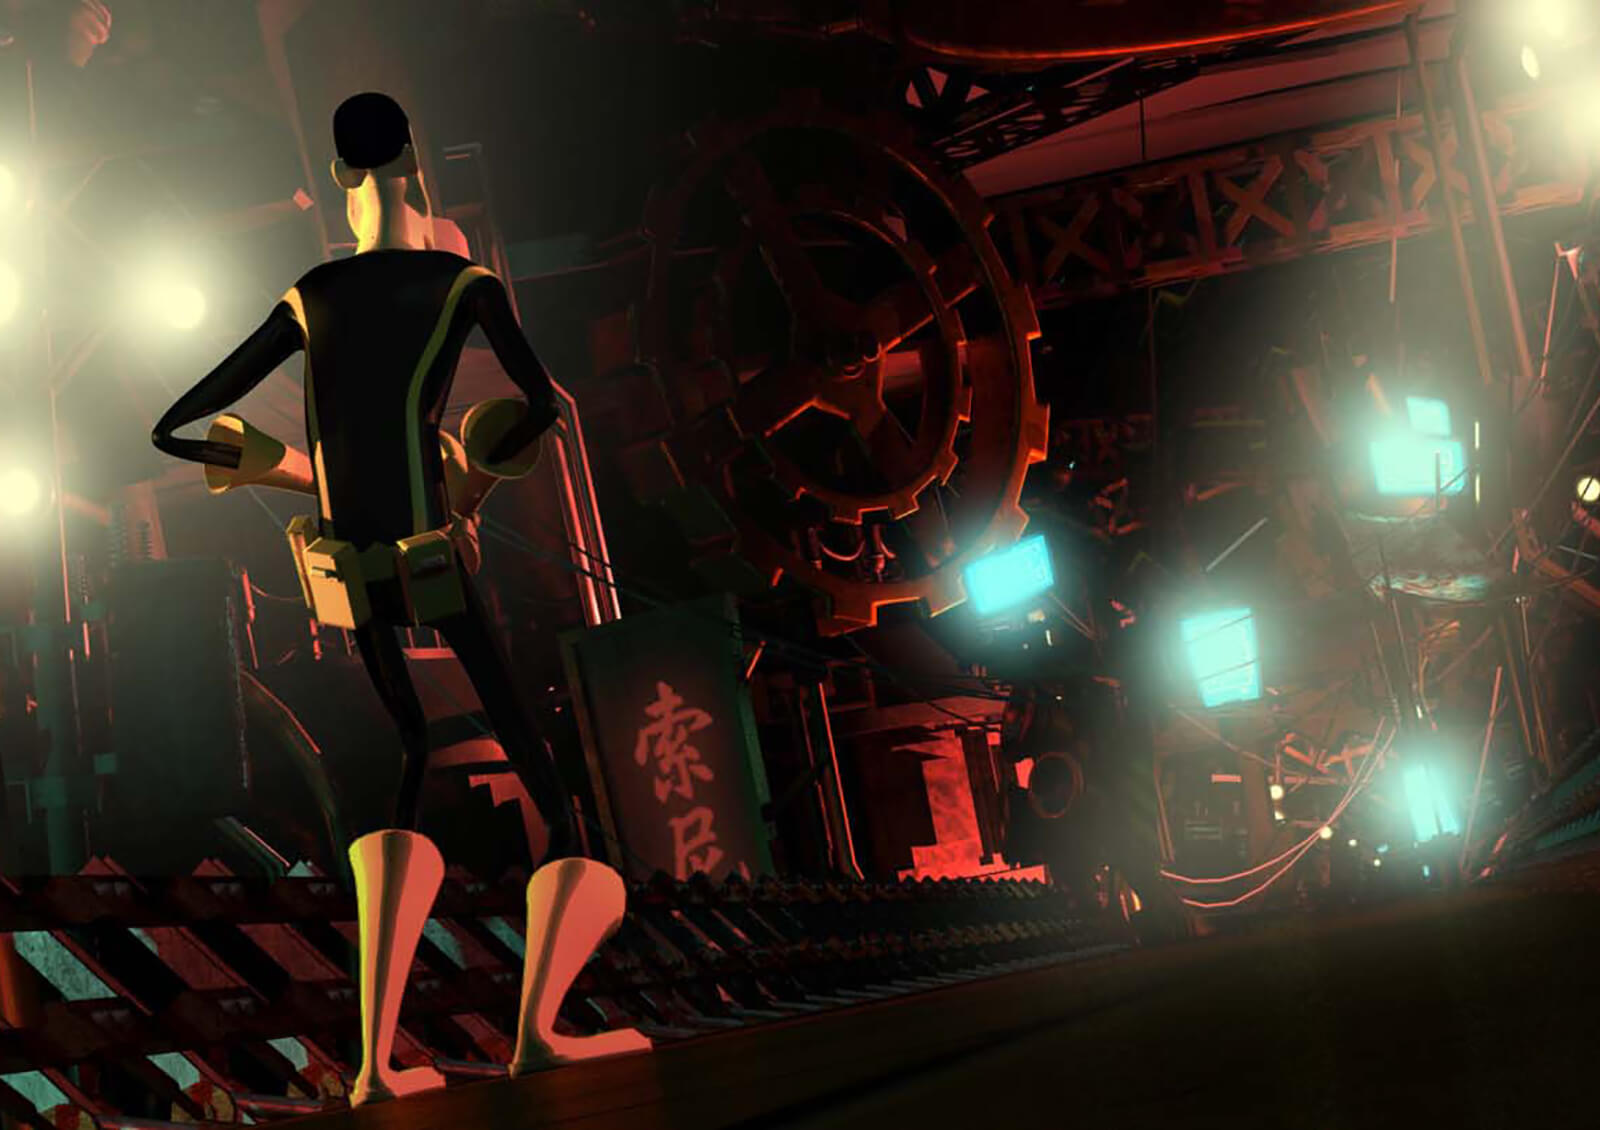 A man in yellow and black spandex tights looks down a red-lit industrial corridor